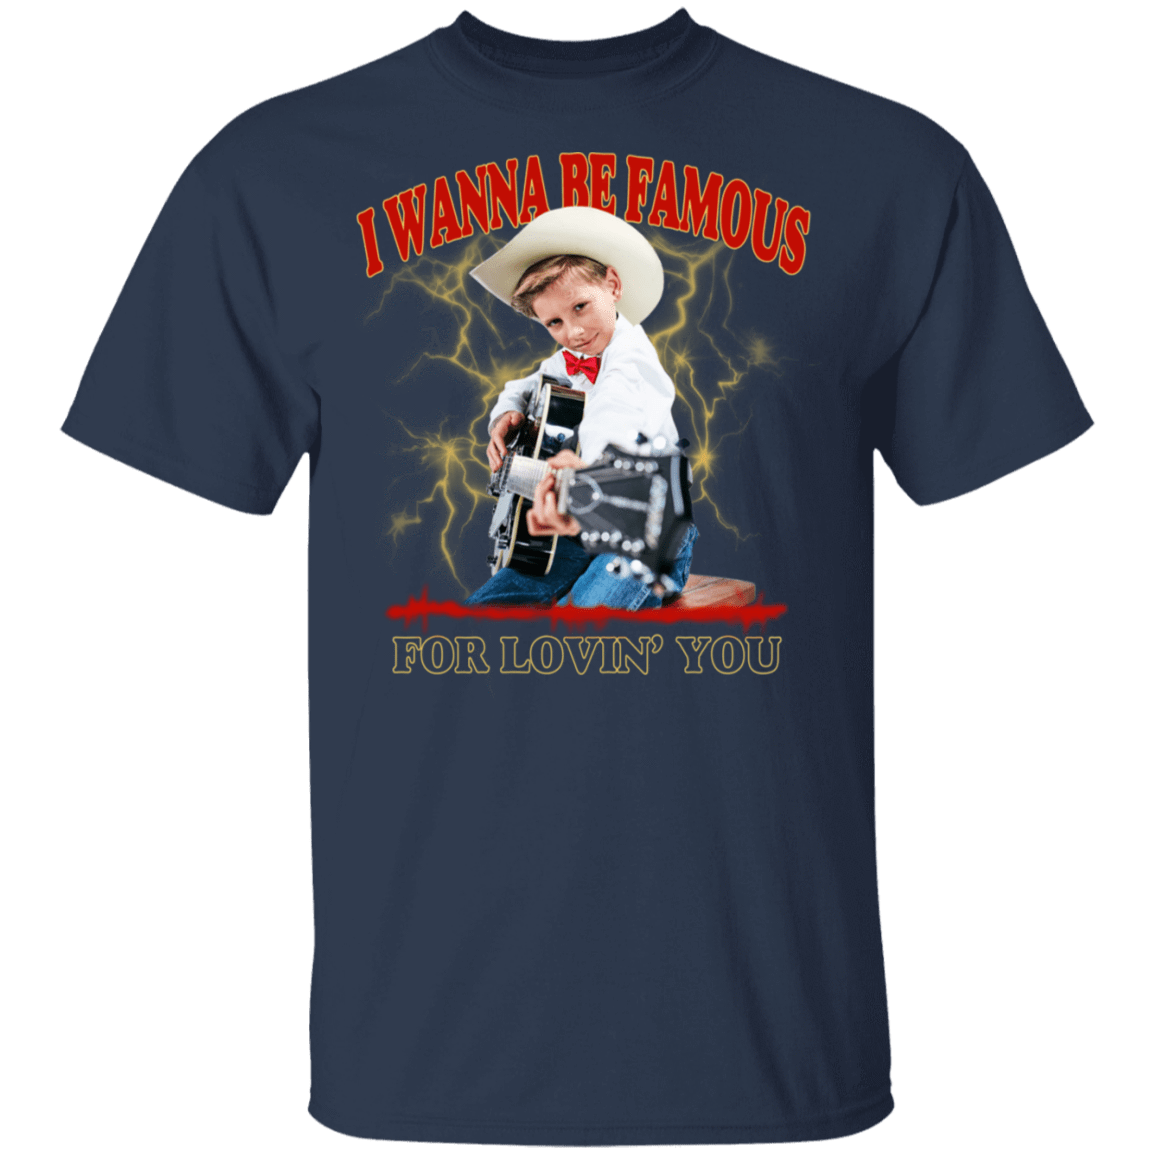 I Wanna Be Famous For Lovin You Mason Ramsey T-Shirts, Hoodies 22-111-80162968-250 - Tee Ript